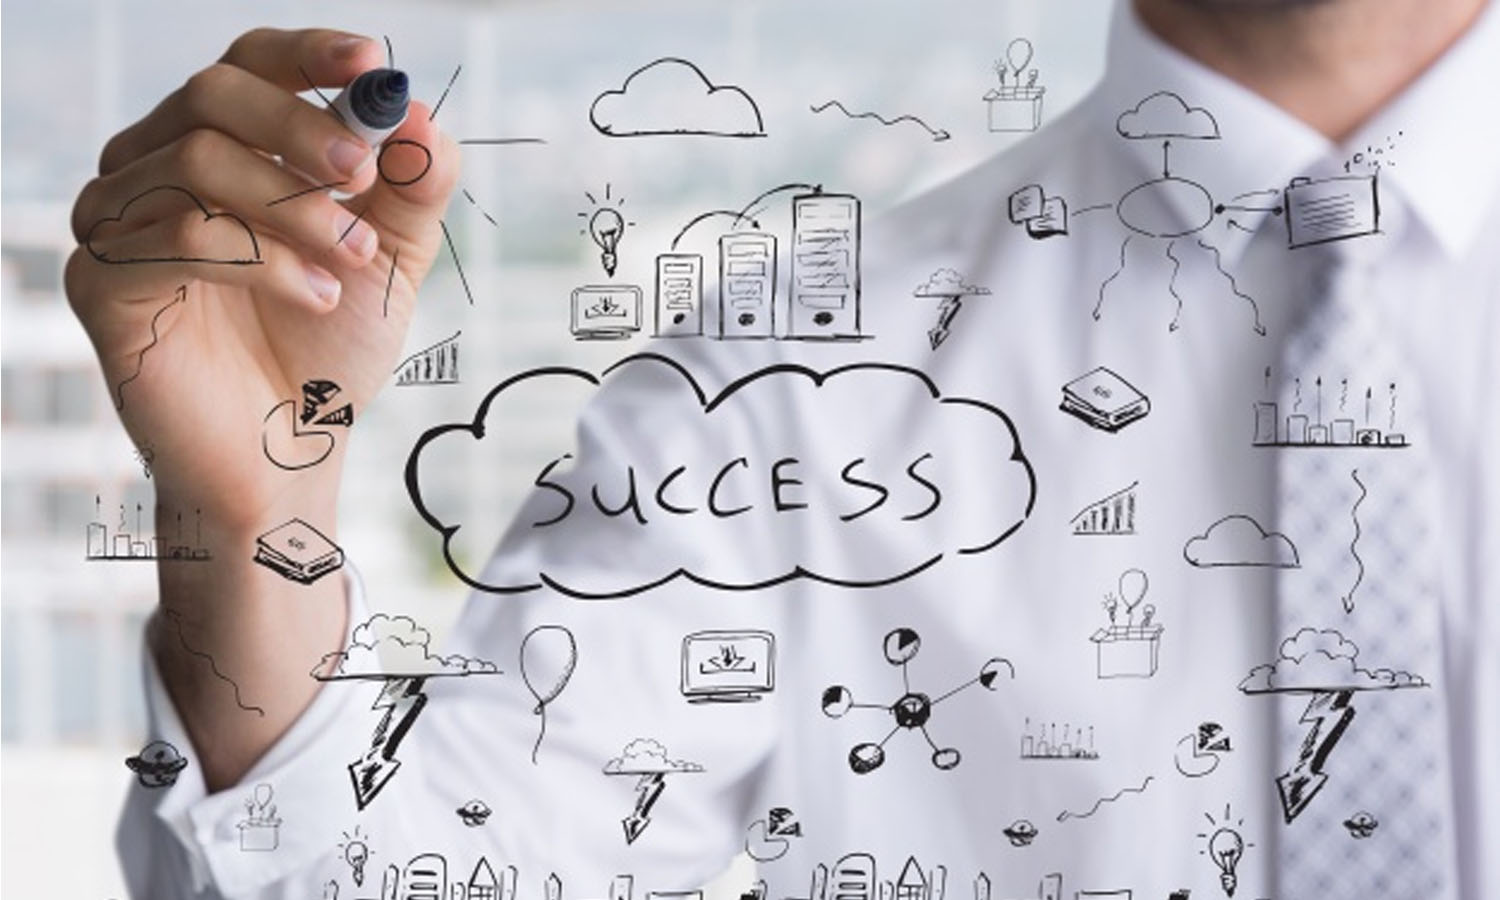 The 5 Components of a Successful Entrepreneur